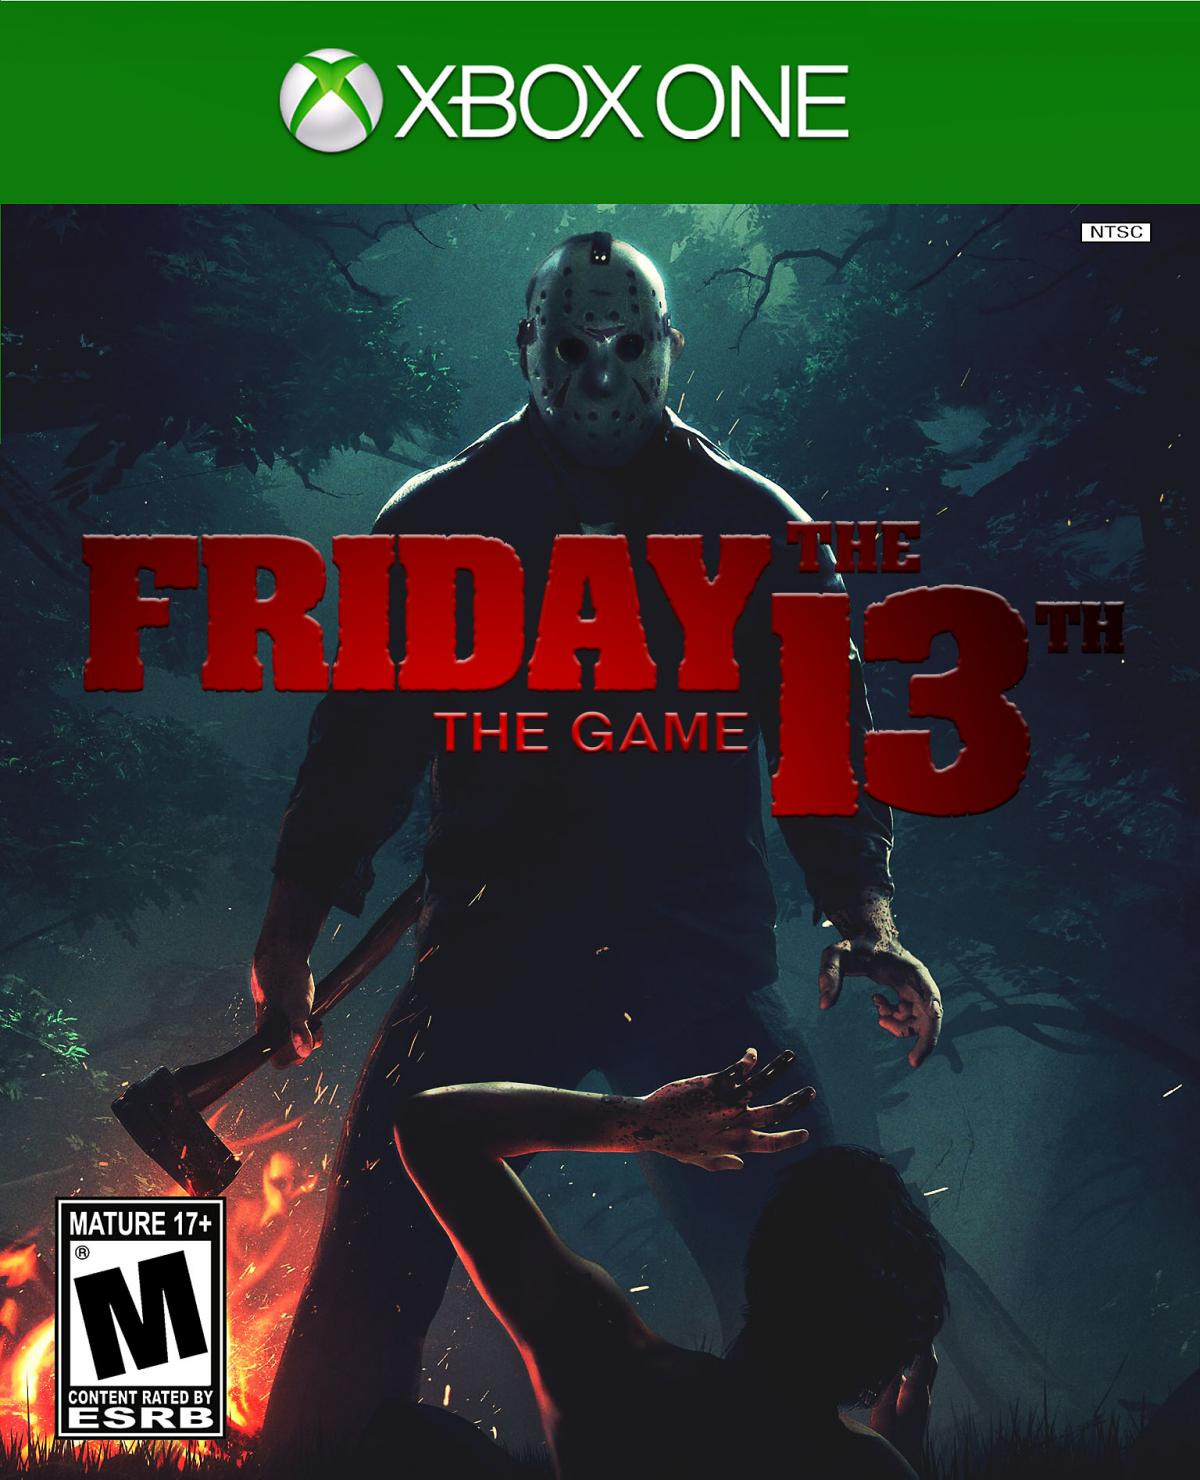 Book Cover Pictures Xbox One : Quot friday the th game ps xbox one box art